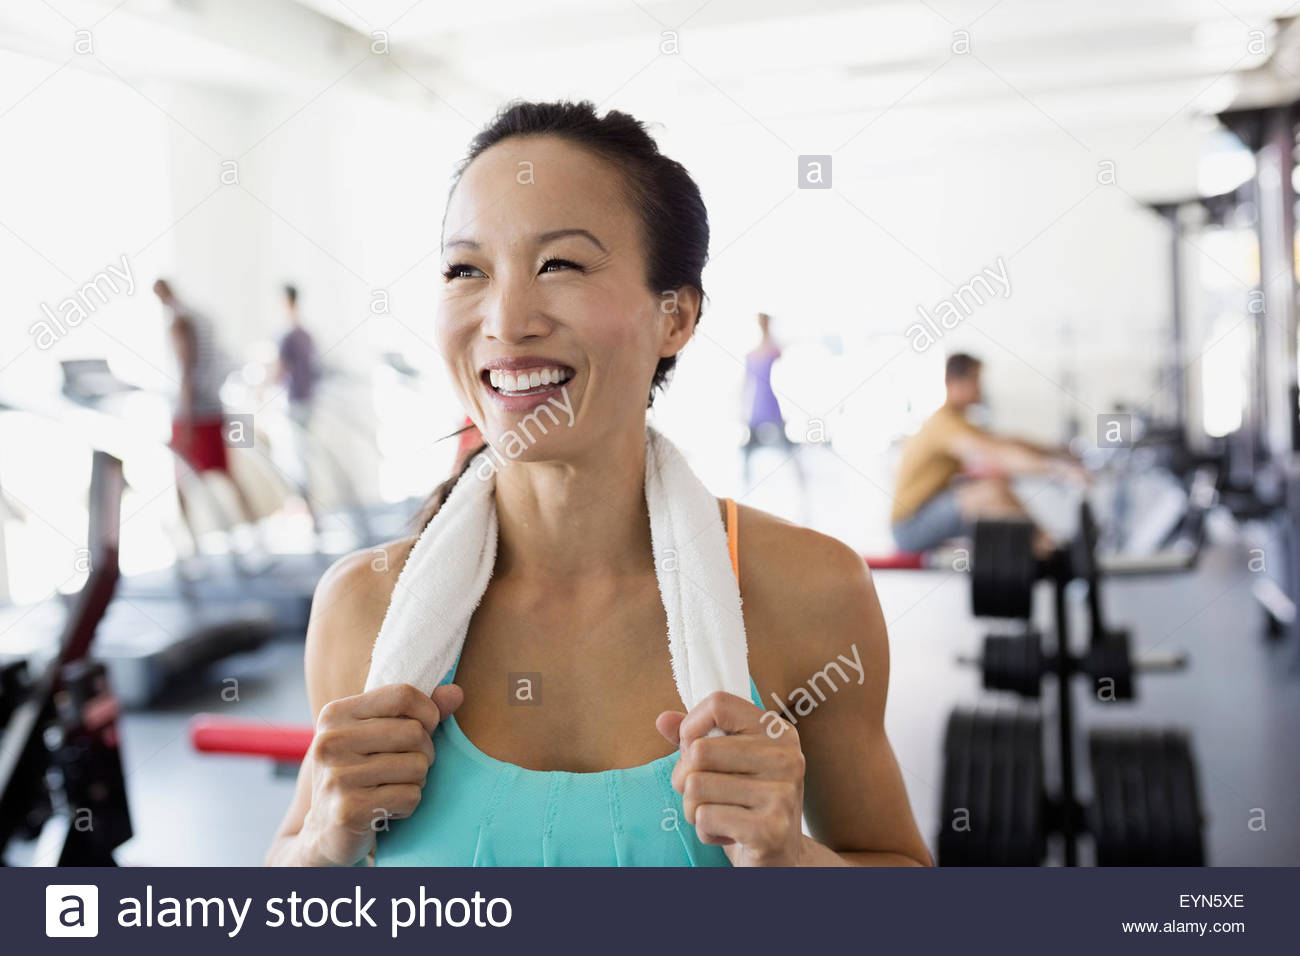 Portrait smiling woman with towel around neck gym - Stock Image